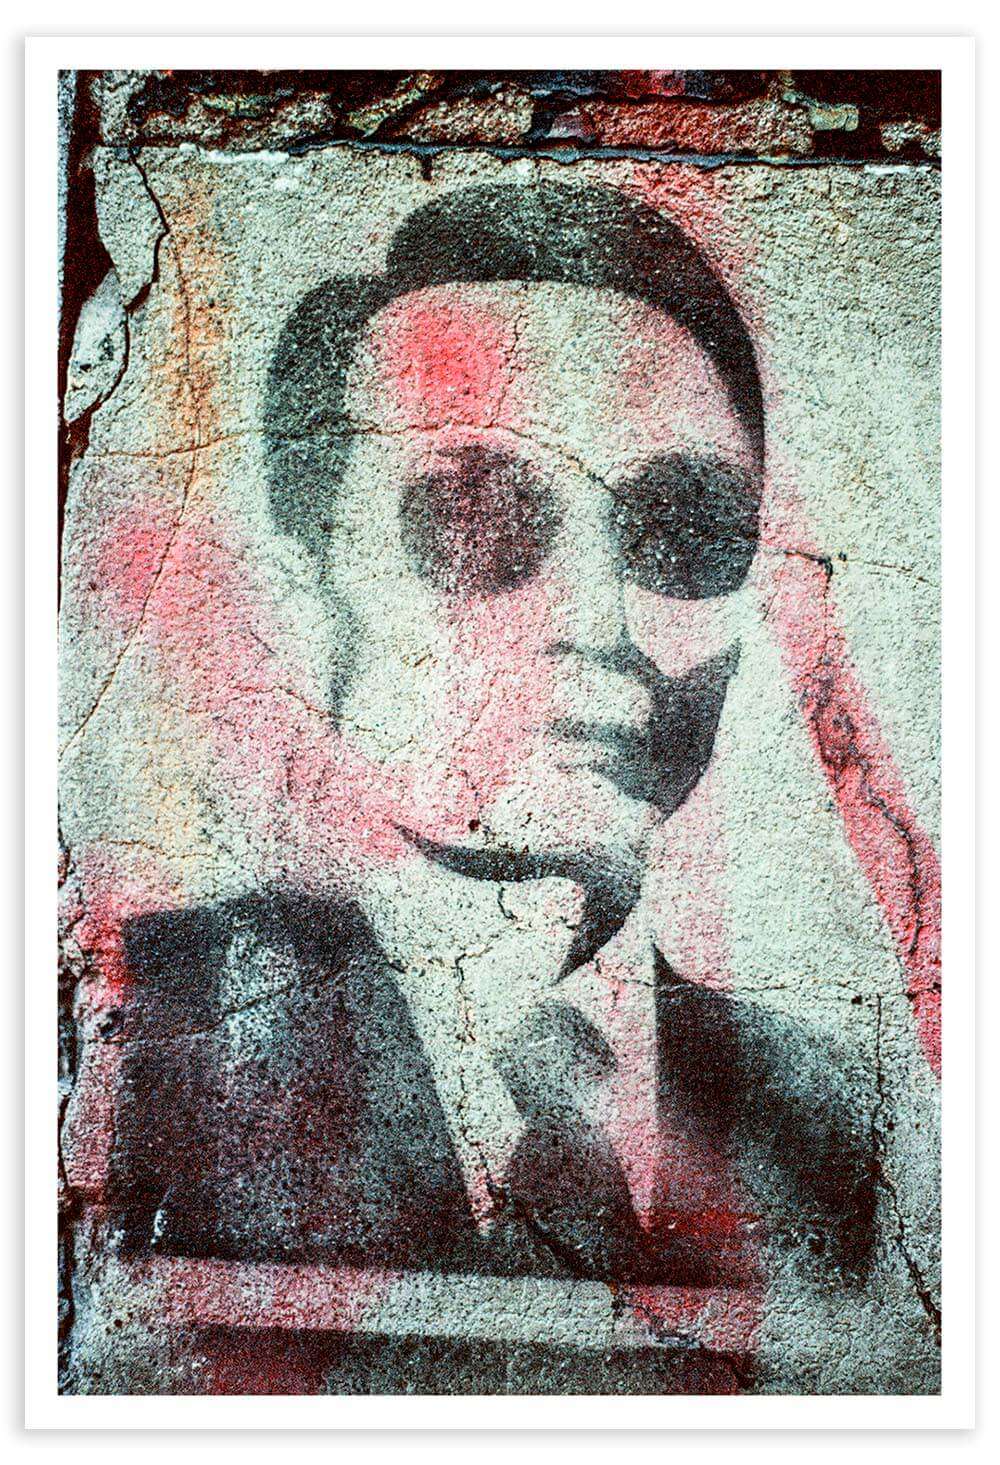 This type of stenciled street-art is so common now, but this is the first example that I remember seeing.